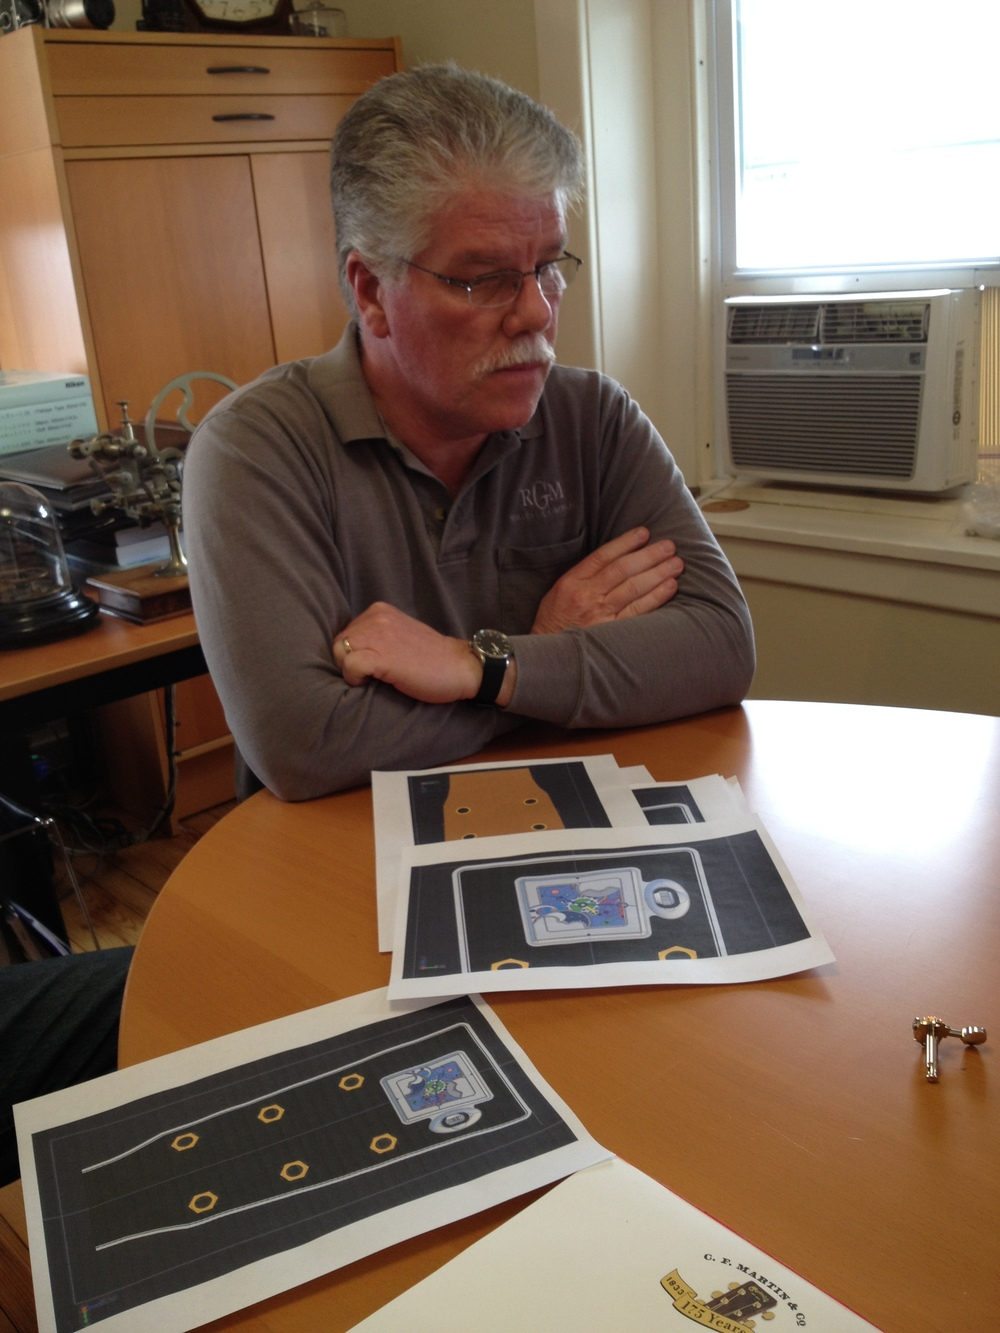 Roland inspecting placement renderings for a one-of-a-kind movement and housing to be mounted within the head stock.